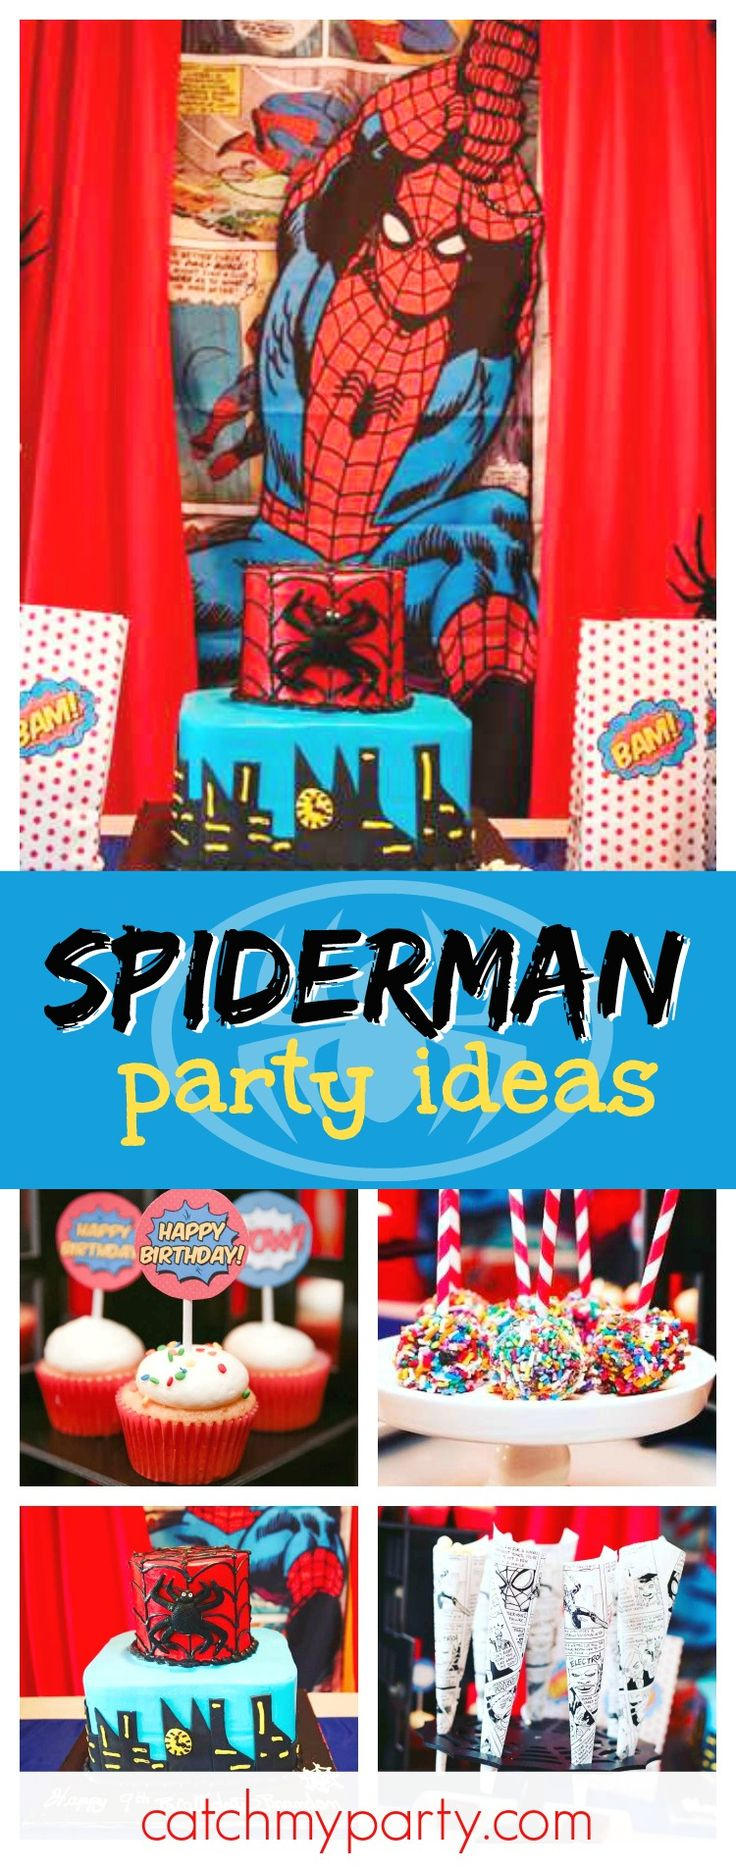 Check out this awesome Spiderman birthday party! The decorations are so much fun!! See more party ideas and share yours at CatchMyParty.com